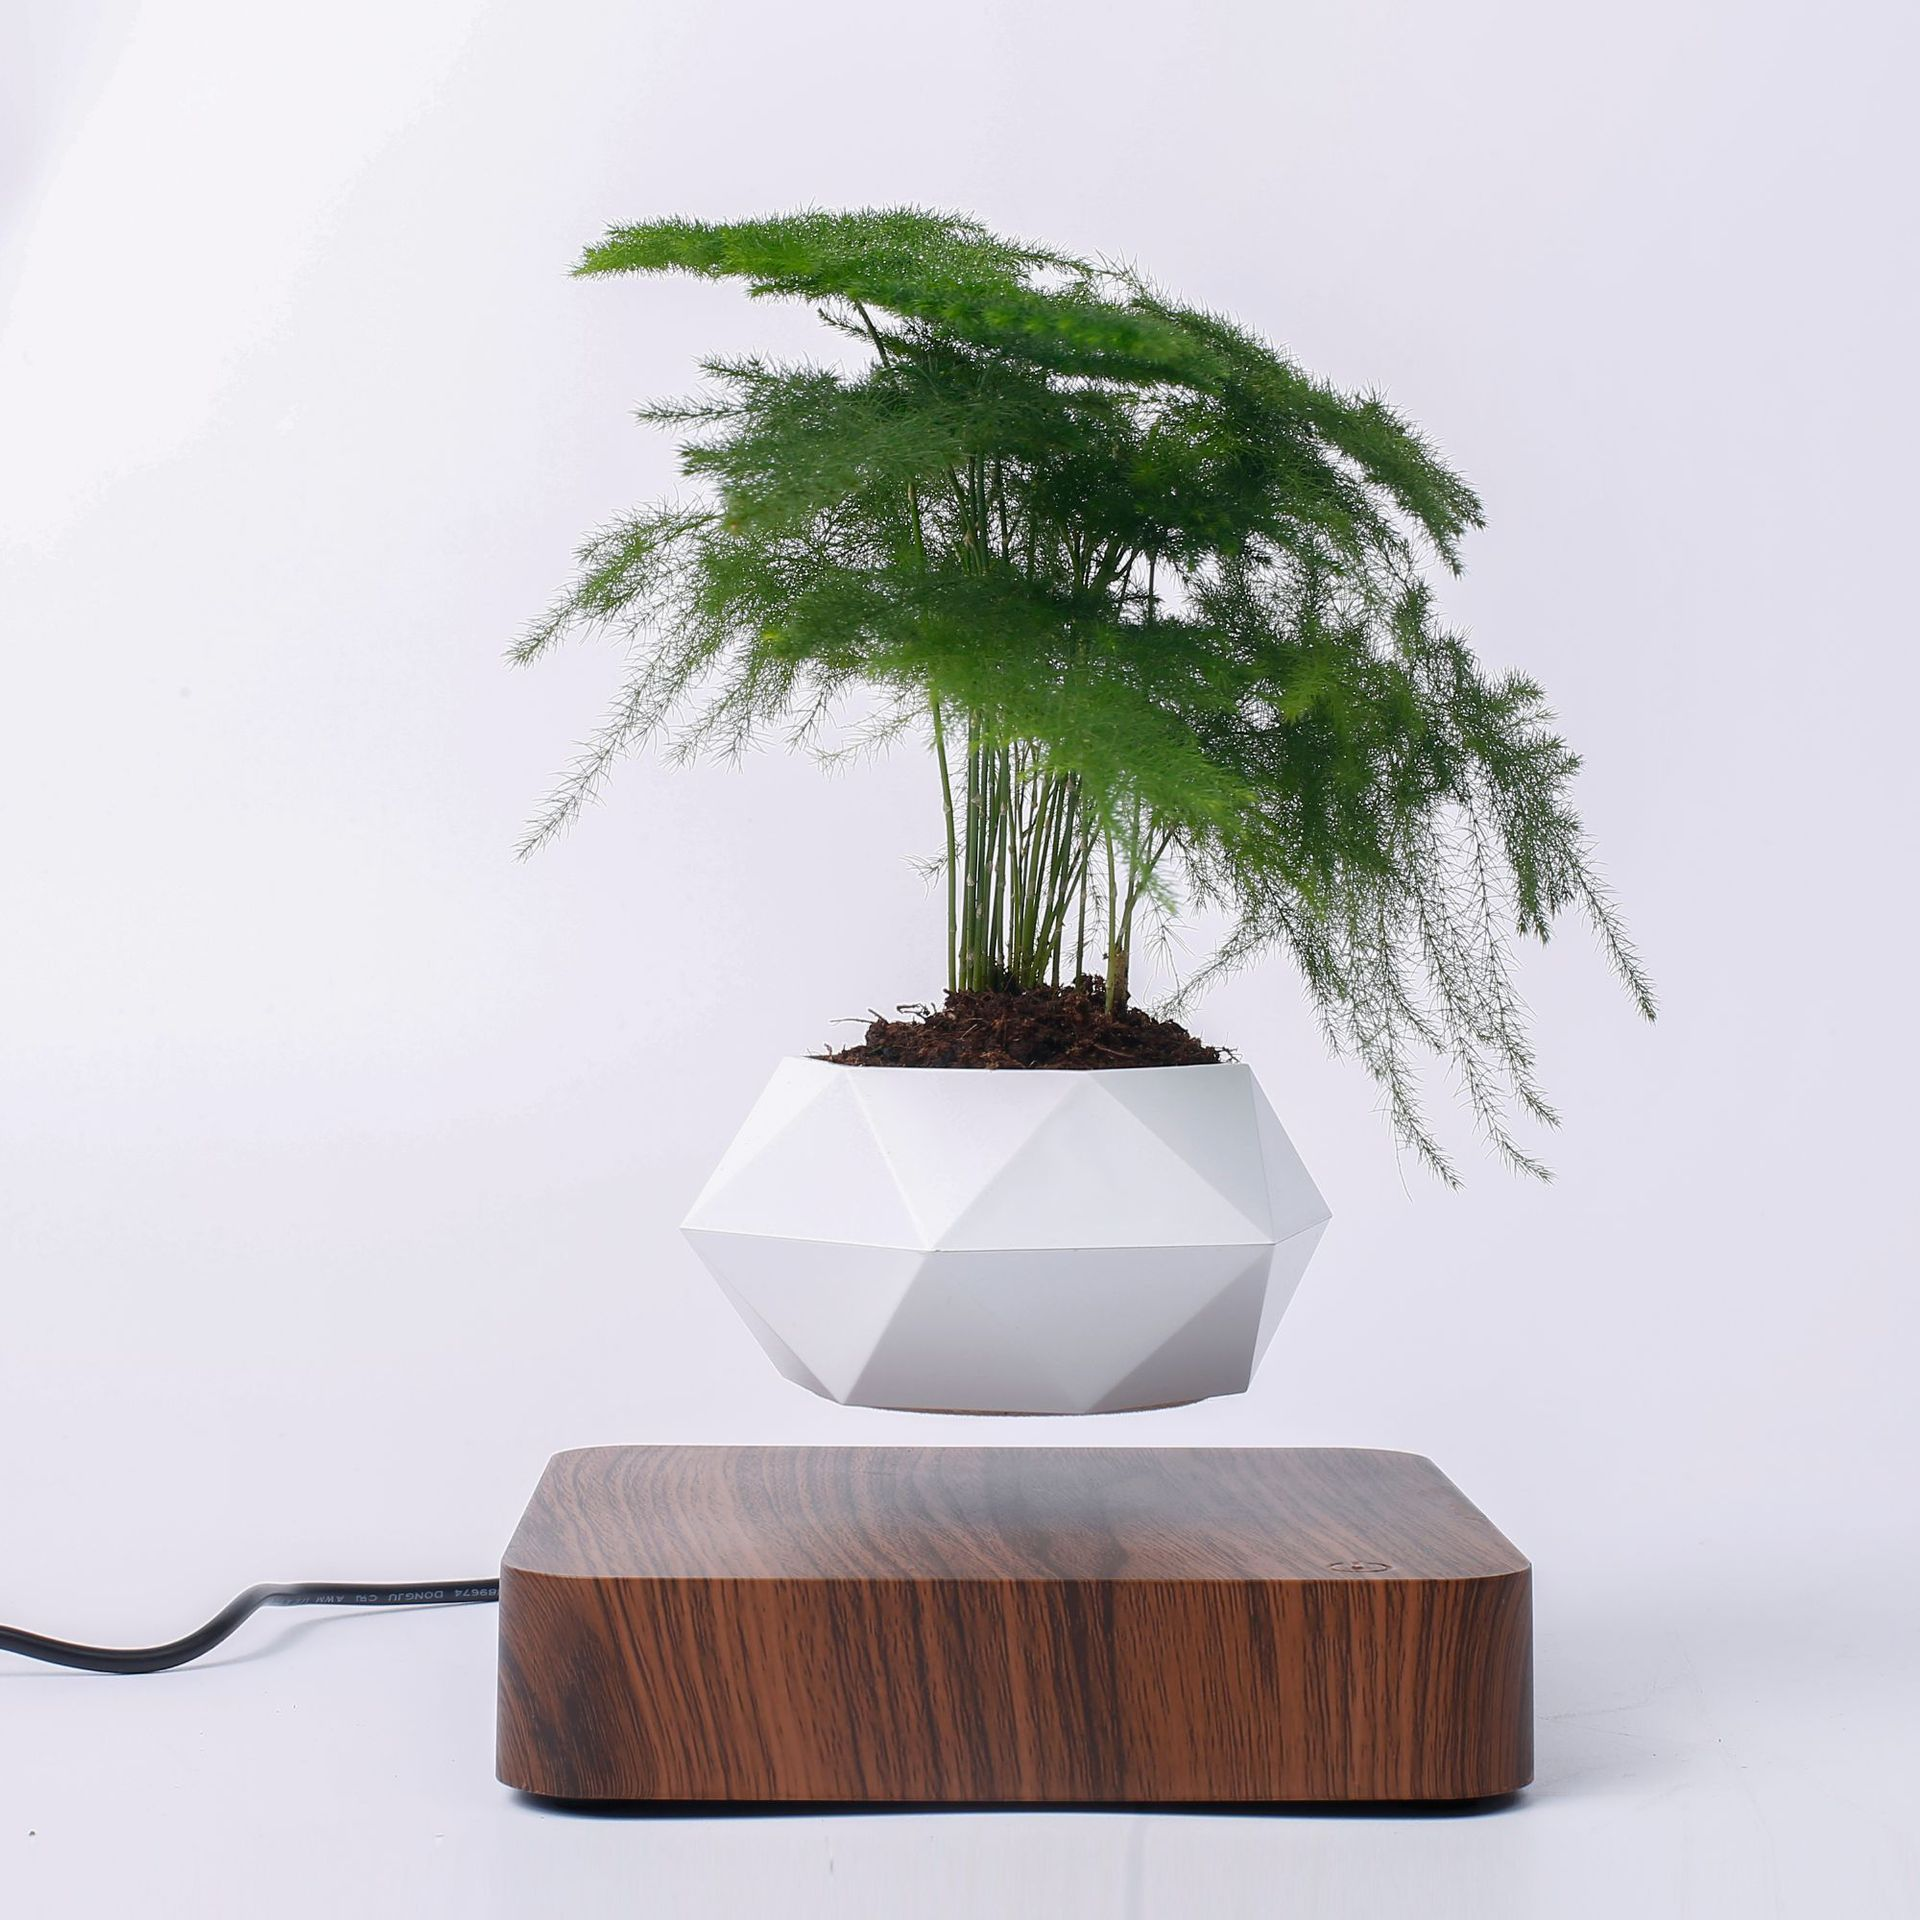 Levitating Desk Plant Pot - Glamorous Hangups Ltd